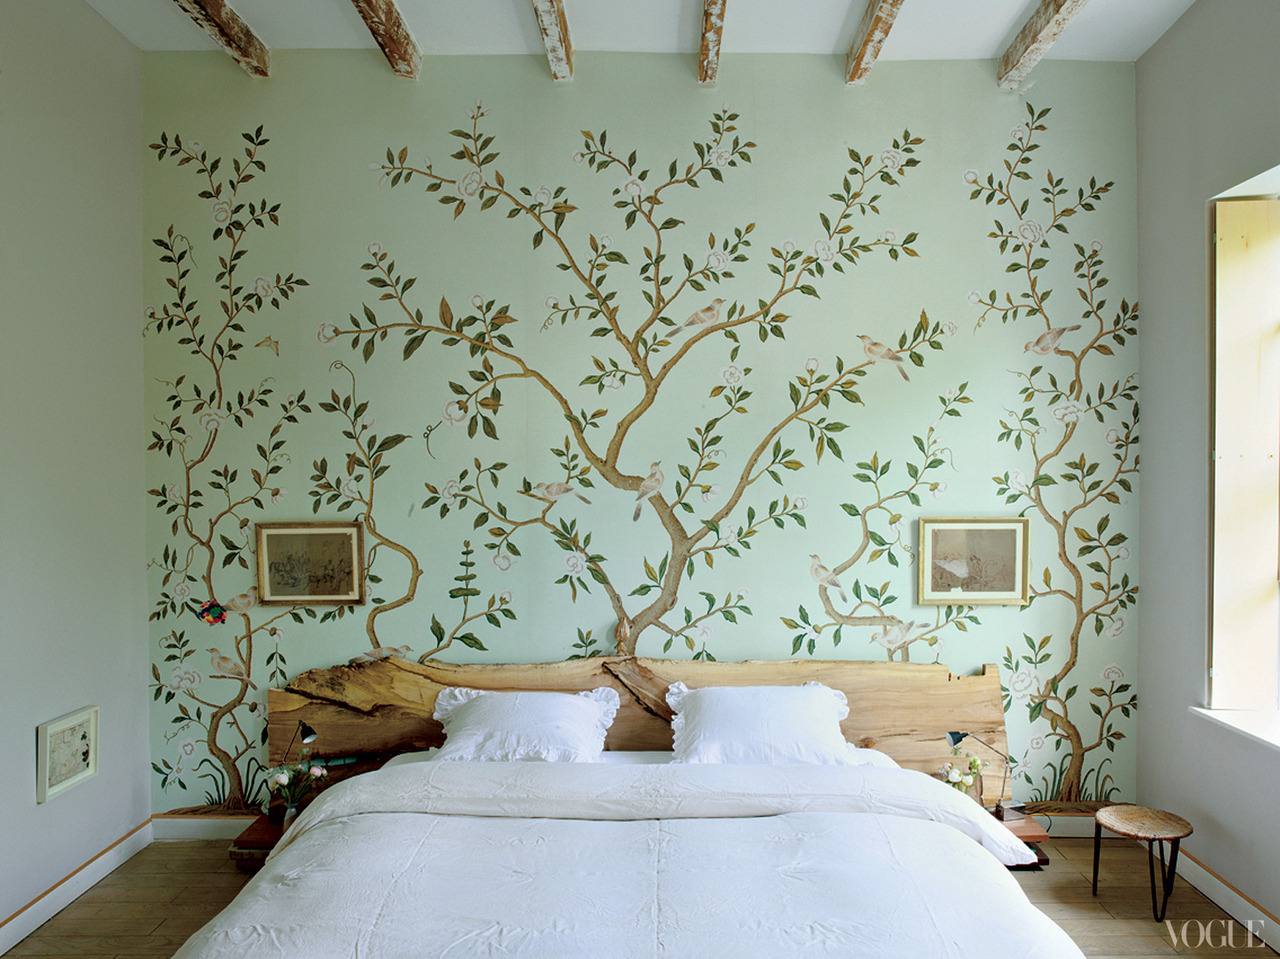 home of Miranda Kerr & Bastien Hallard, via Vogue